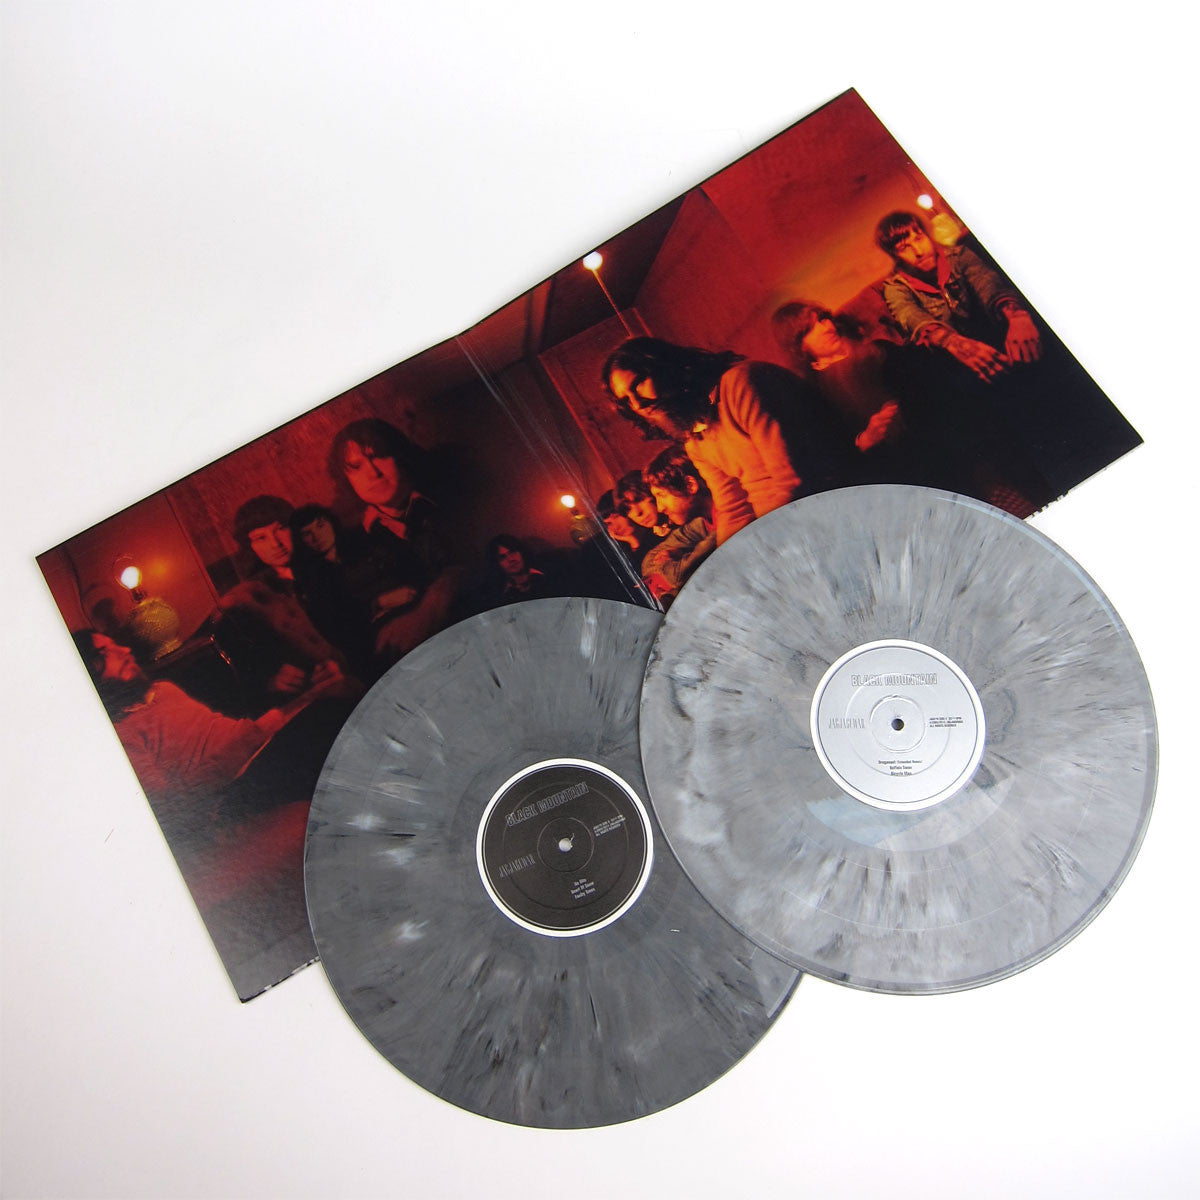 Black Mountain: Black Mountain - 10th Anniversary Deluxe Edition (Colored Vinyl) Vinyl 2LP detail